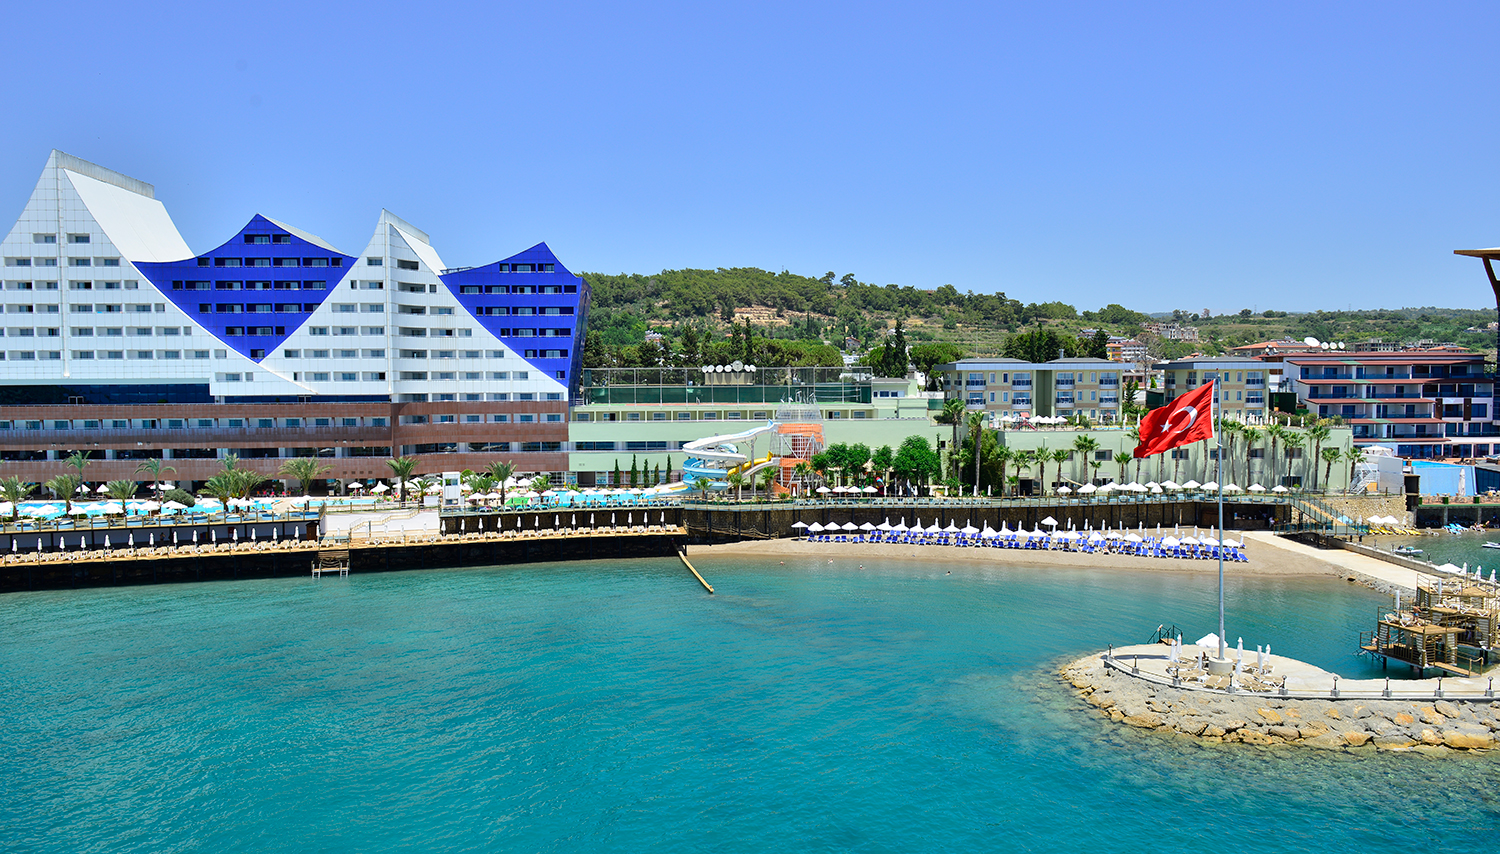 Orange County Alanya hotell (Antalya, Türgi)